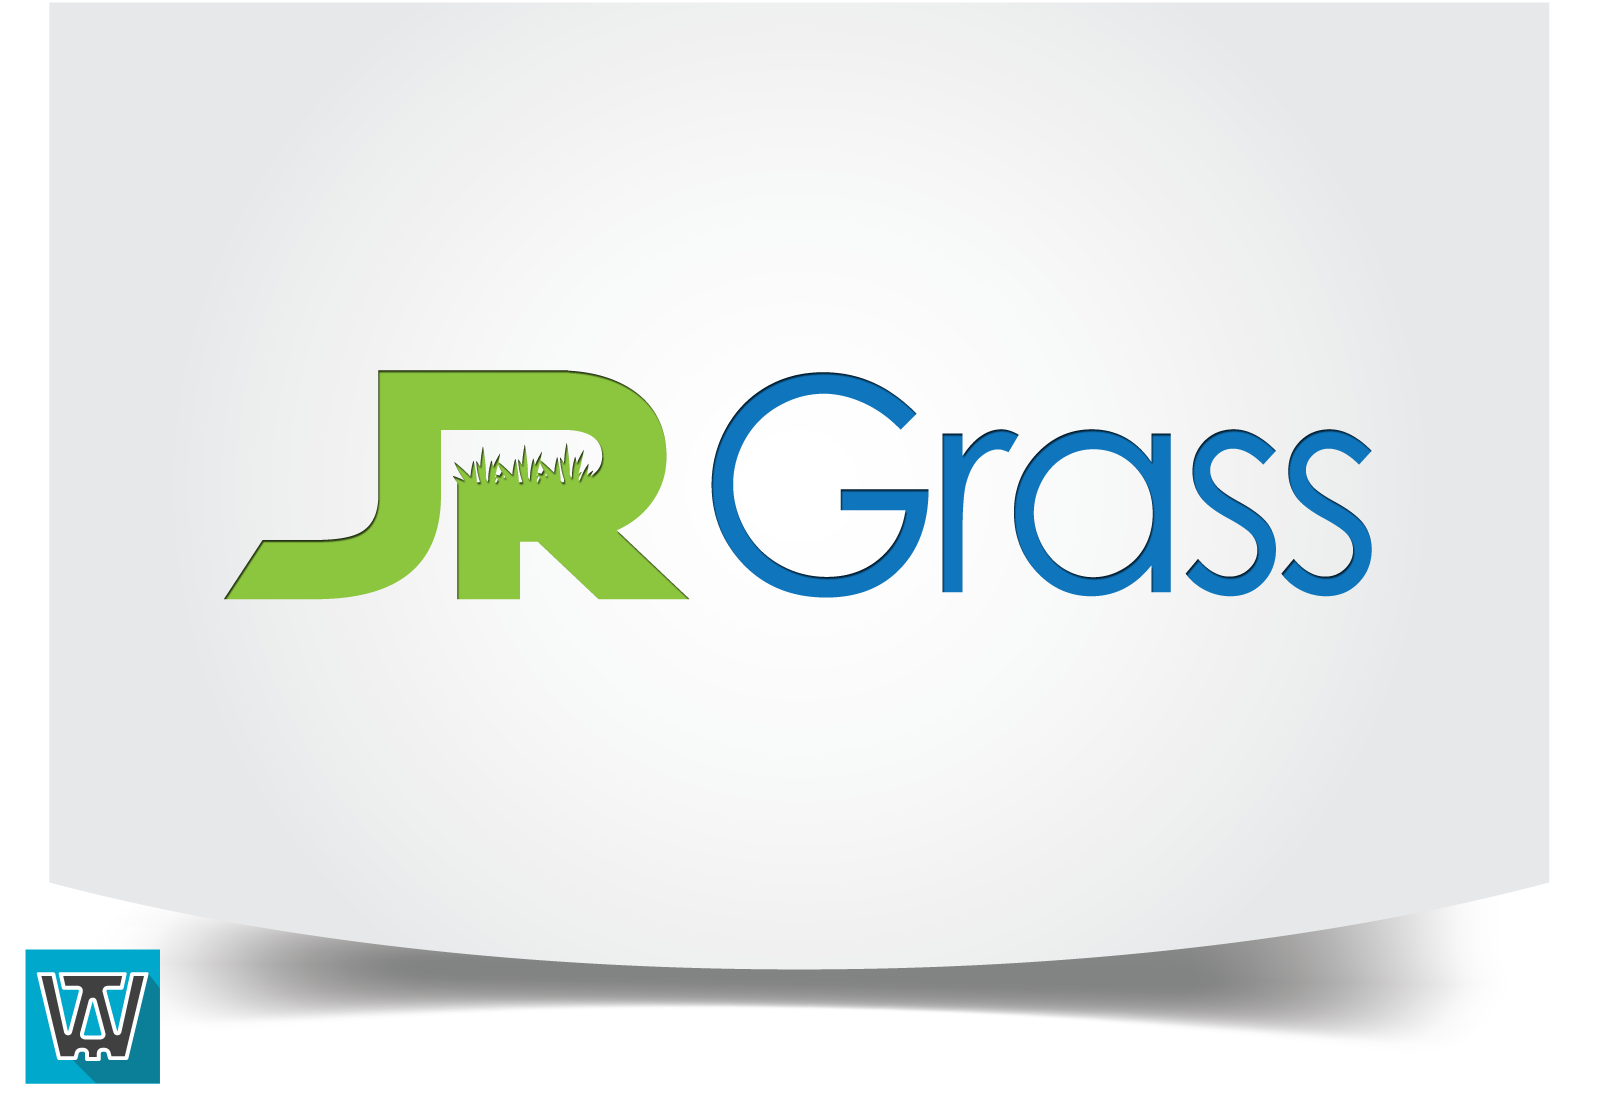 Logo Design by 354studio - Entry No. 48 in the Logo Design Contest Inspiring Logo Design for JR Grass.